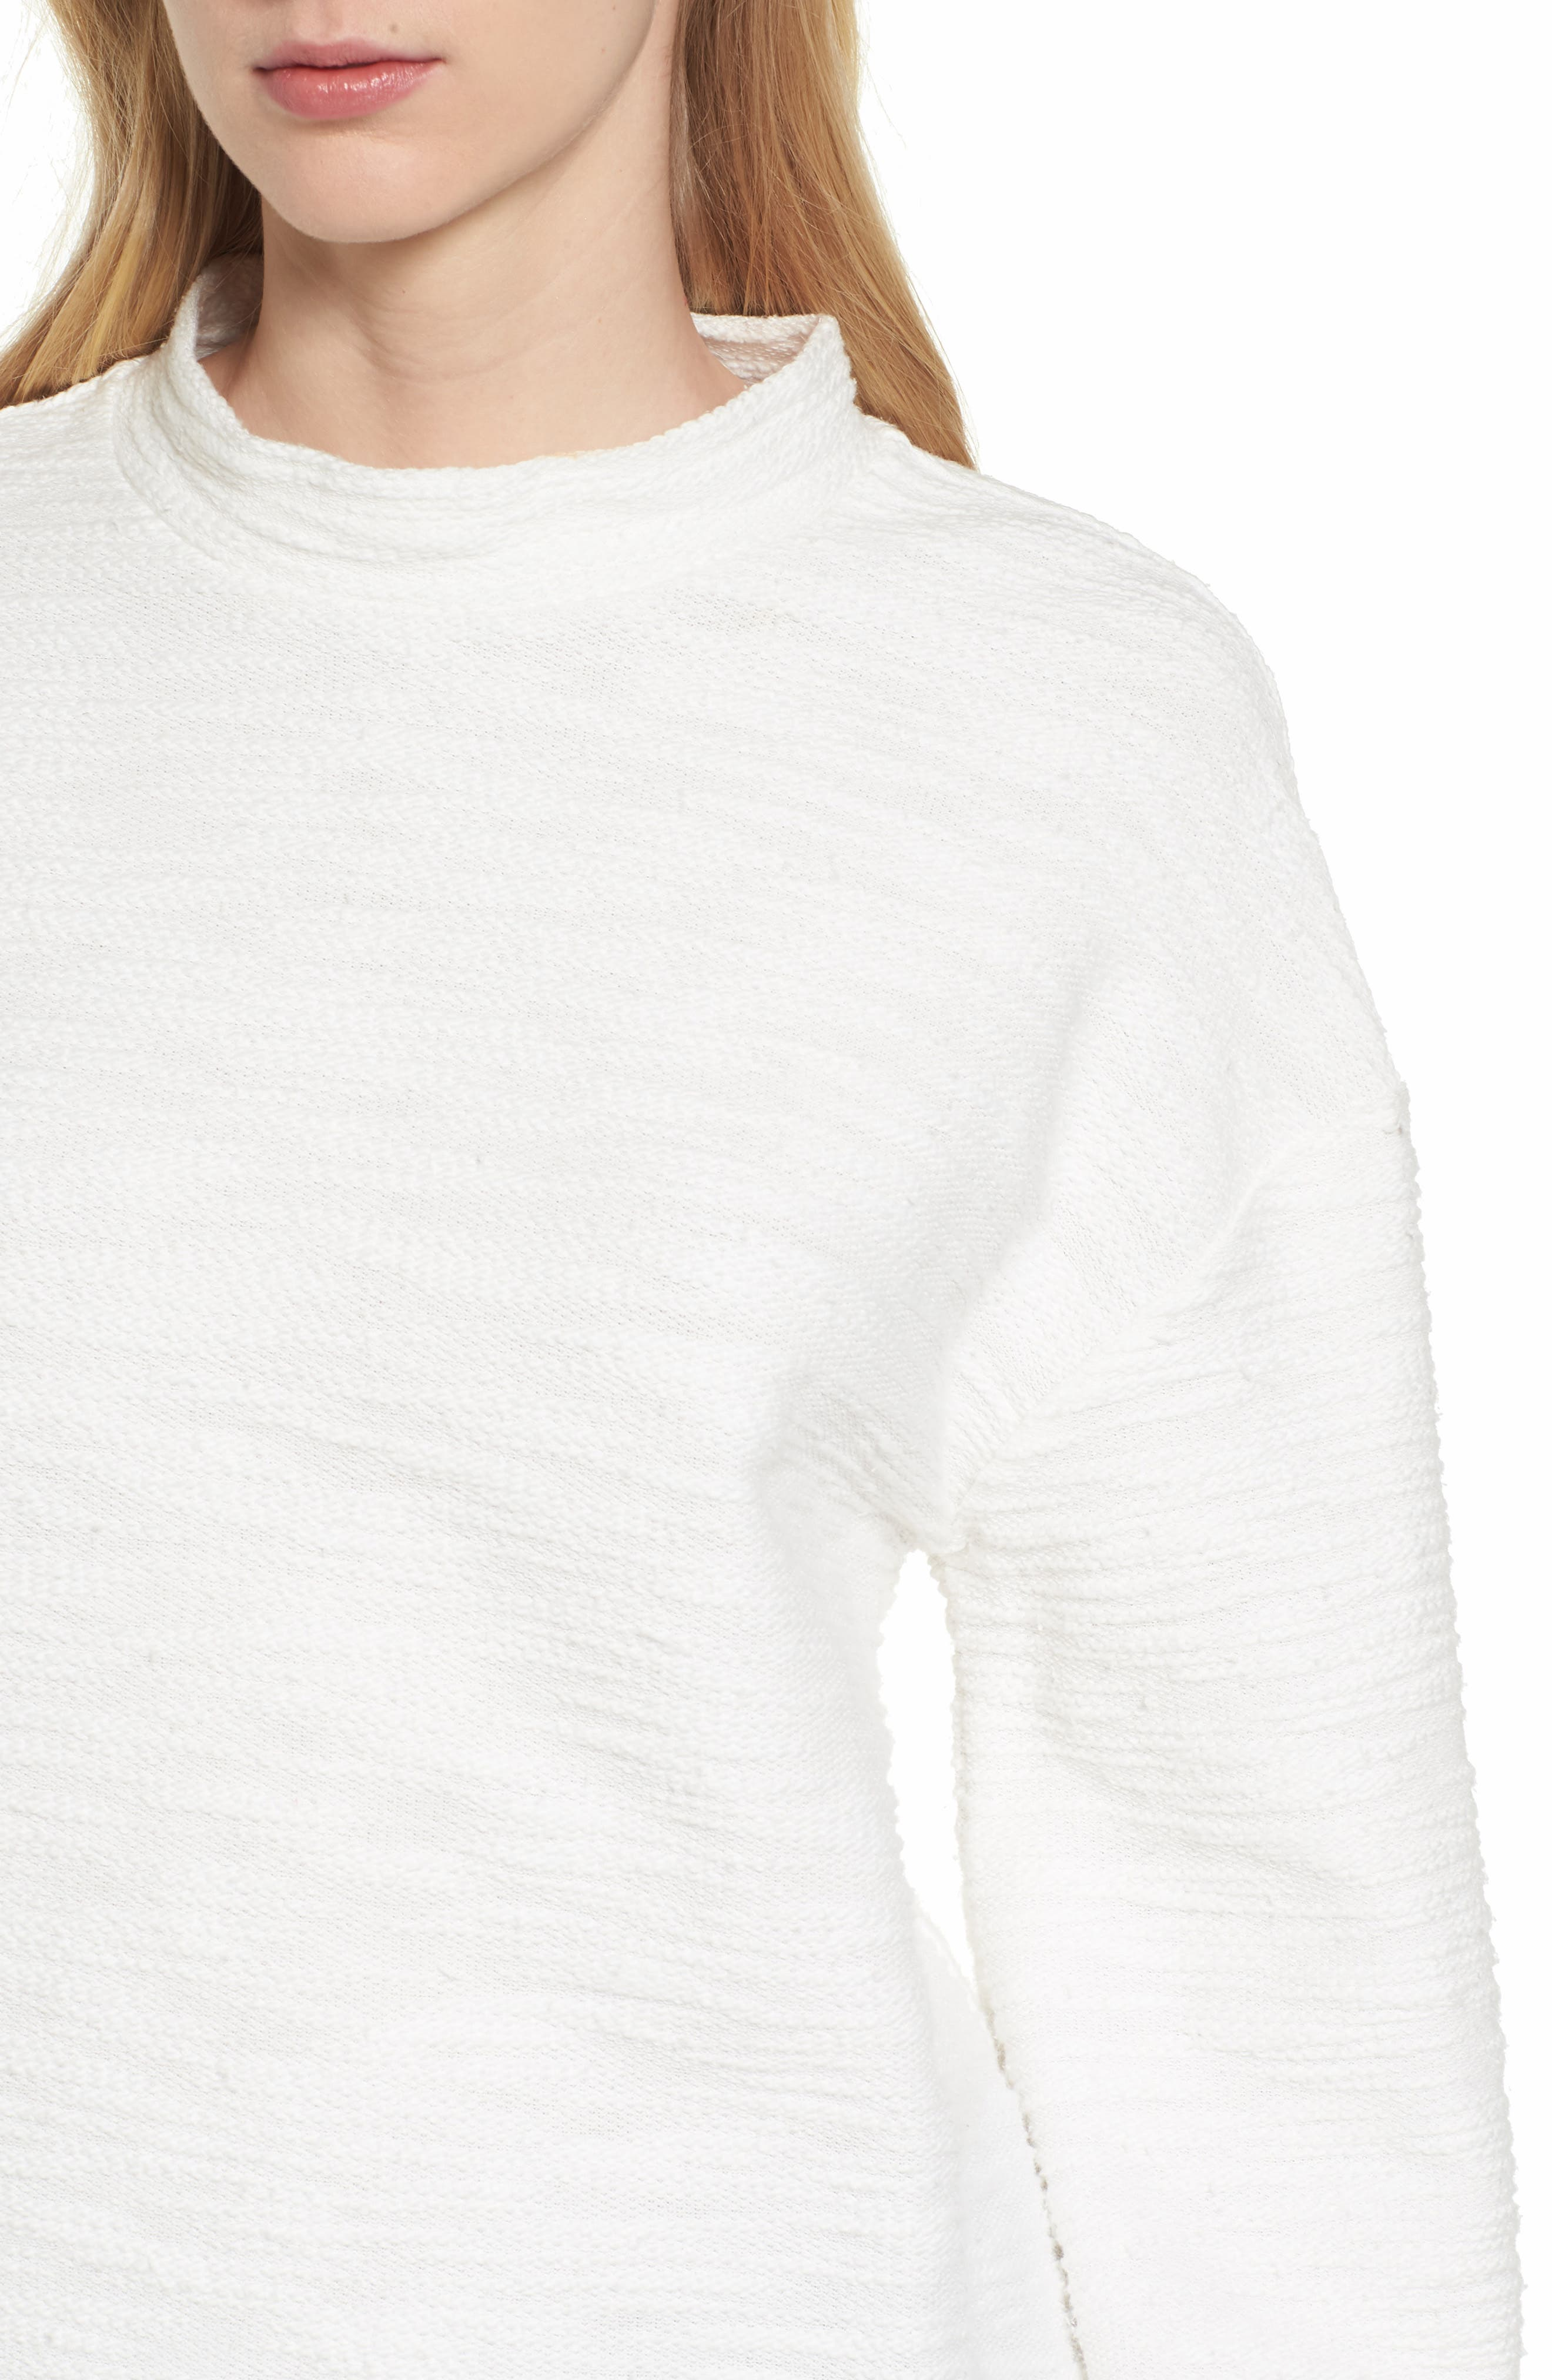 Bishop + Young No Sweat Pullover,                             Alternate thumbnail 4, color,                             Ivory